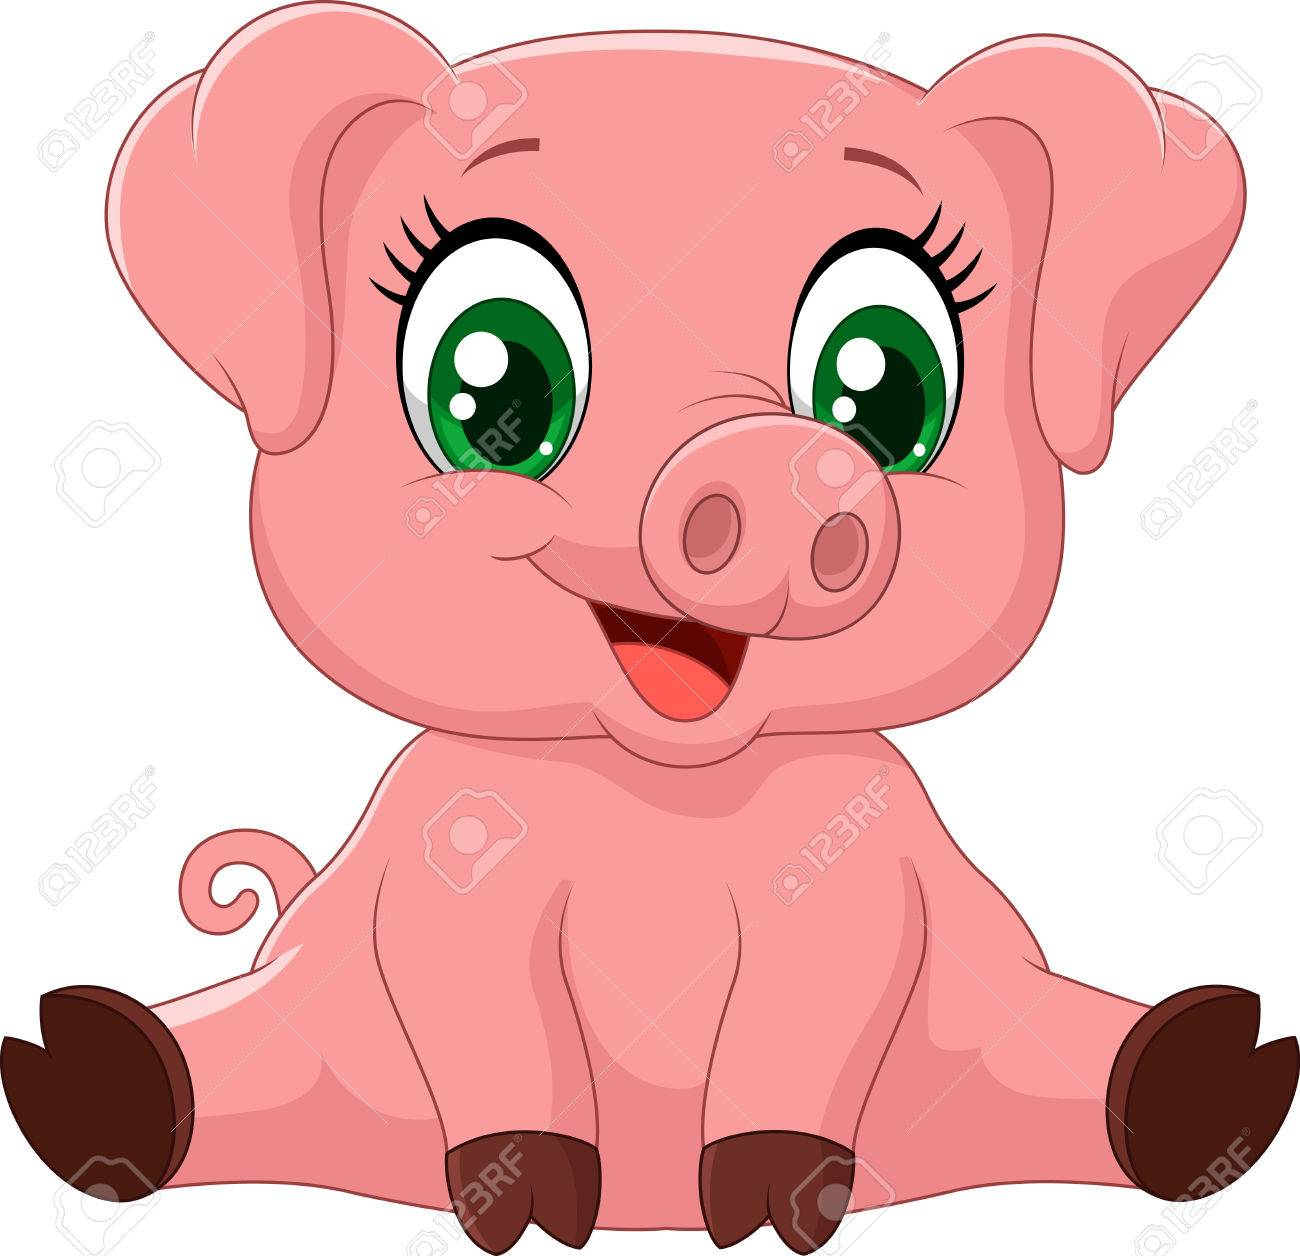 cartoon adorable baby pig vector illustration royalty free cliparts rh 123rf com pig vector free download pig vector art free